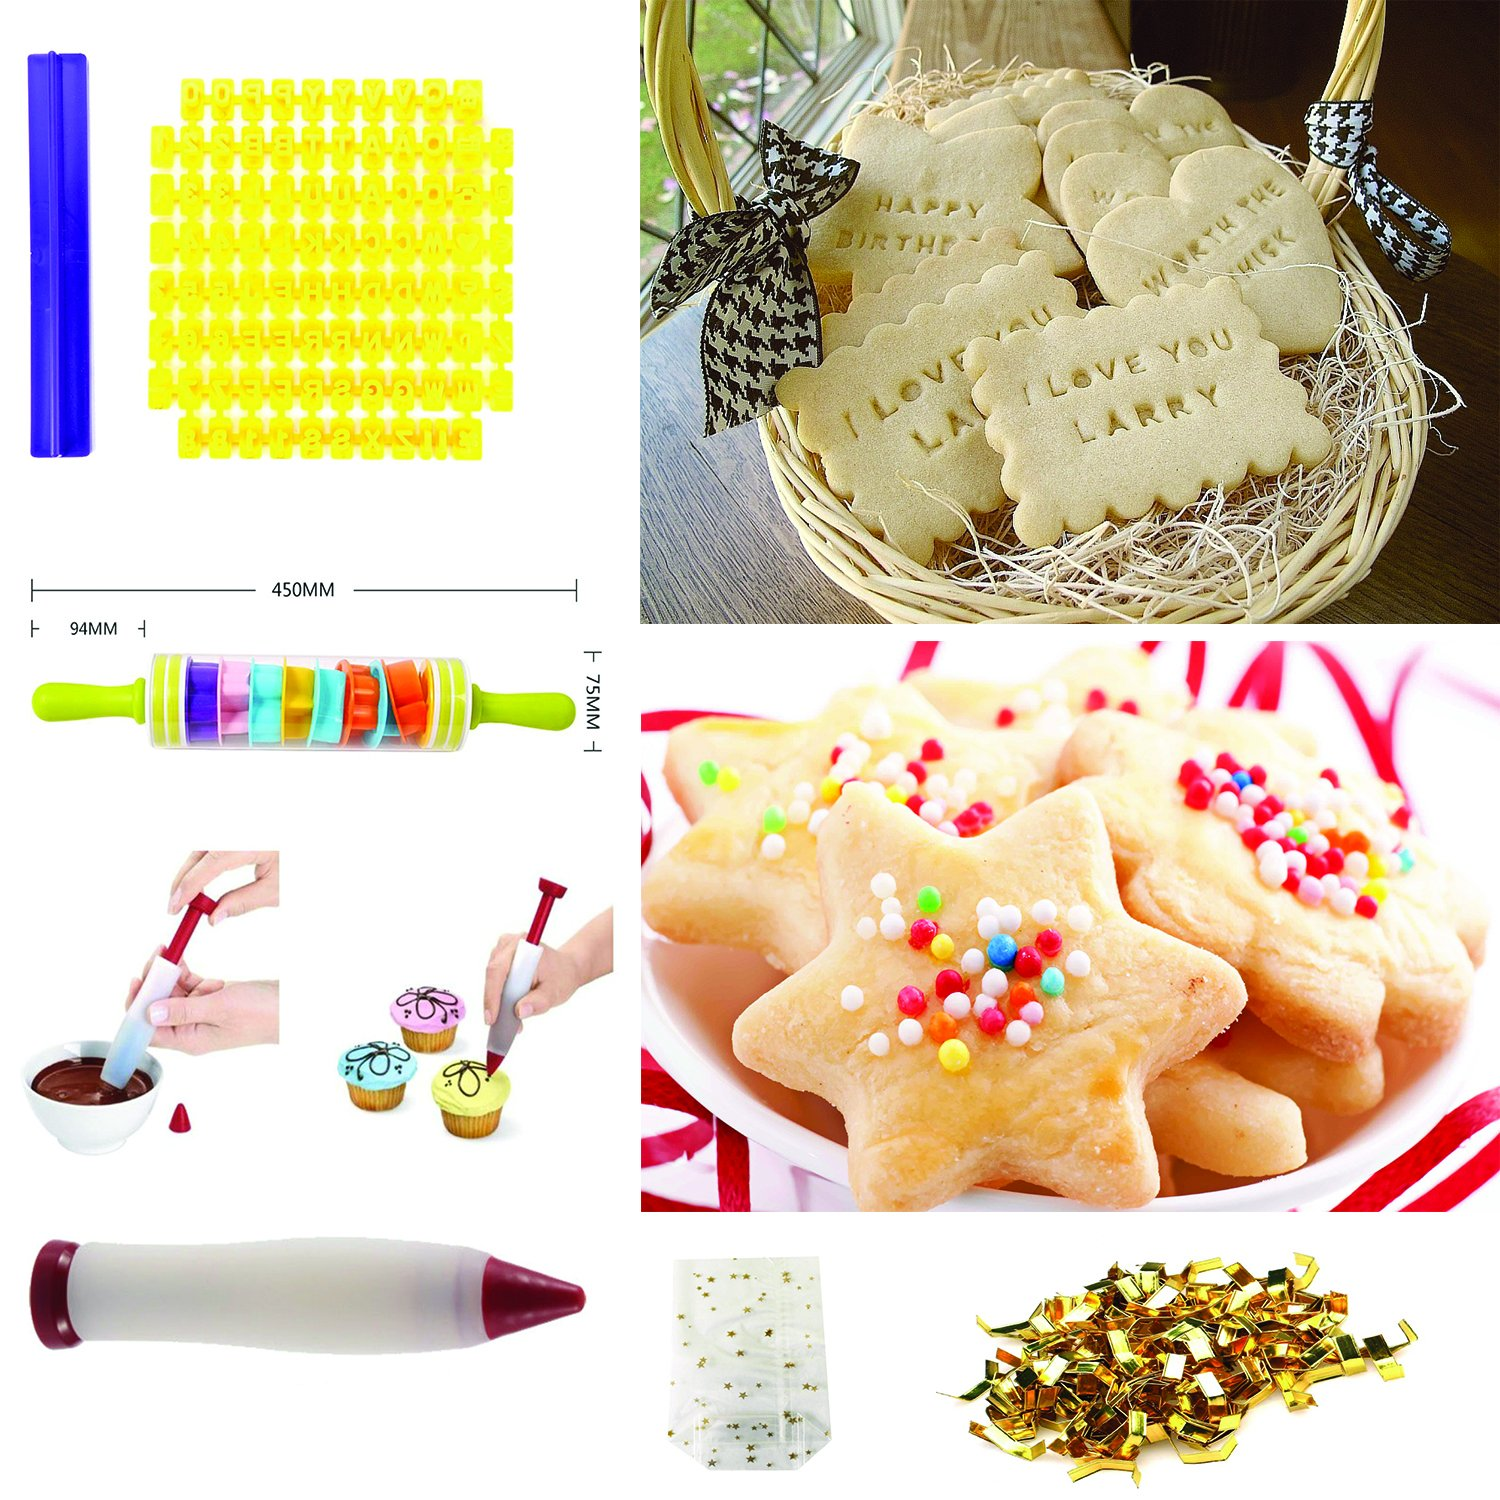 Cookiepro Festive Edition - 231pcs Cookie Biscuit Cutter + Stamp Set With 6pcs Xmas Stampers + decorating icing pen + Rolling pin + Alphabet& Number Stamps + Icing Piping Syringe With Nozzles and more by Terraberk (Image #5)